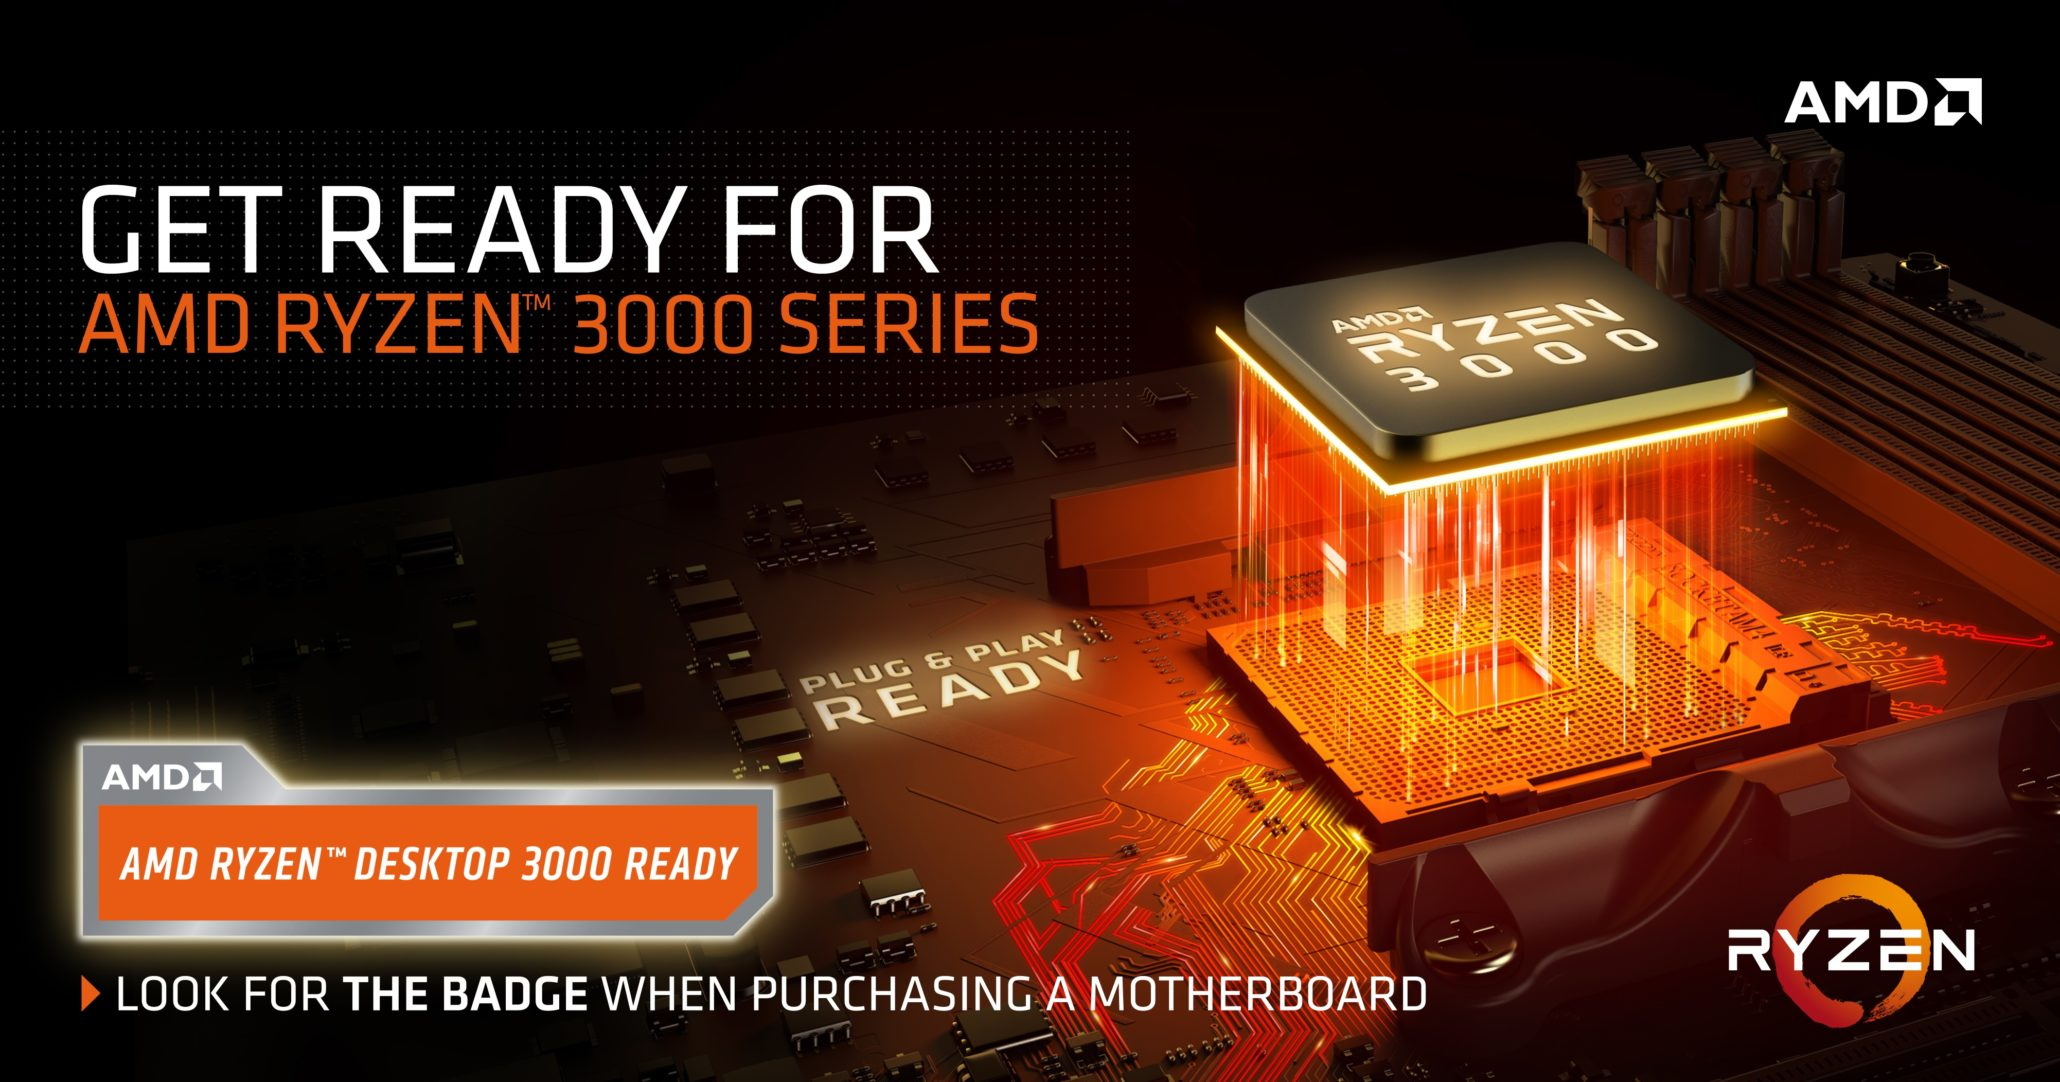 AMD has announced their next-generation 7nm based, Ryzen 3000 series CPUs at Computex 2019